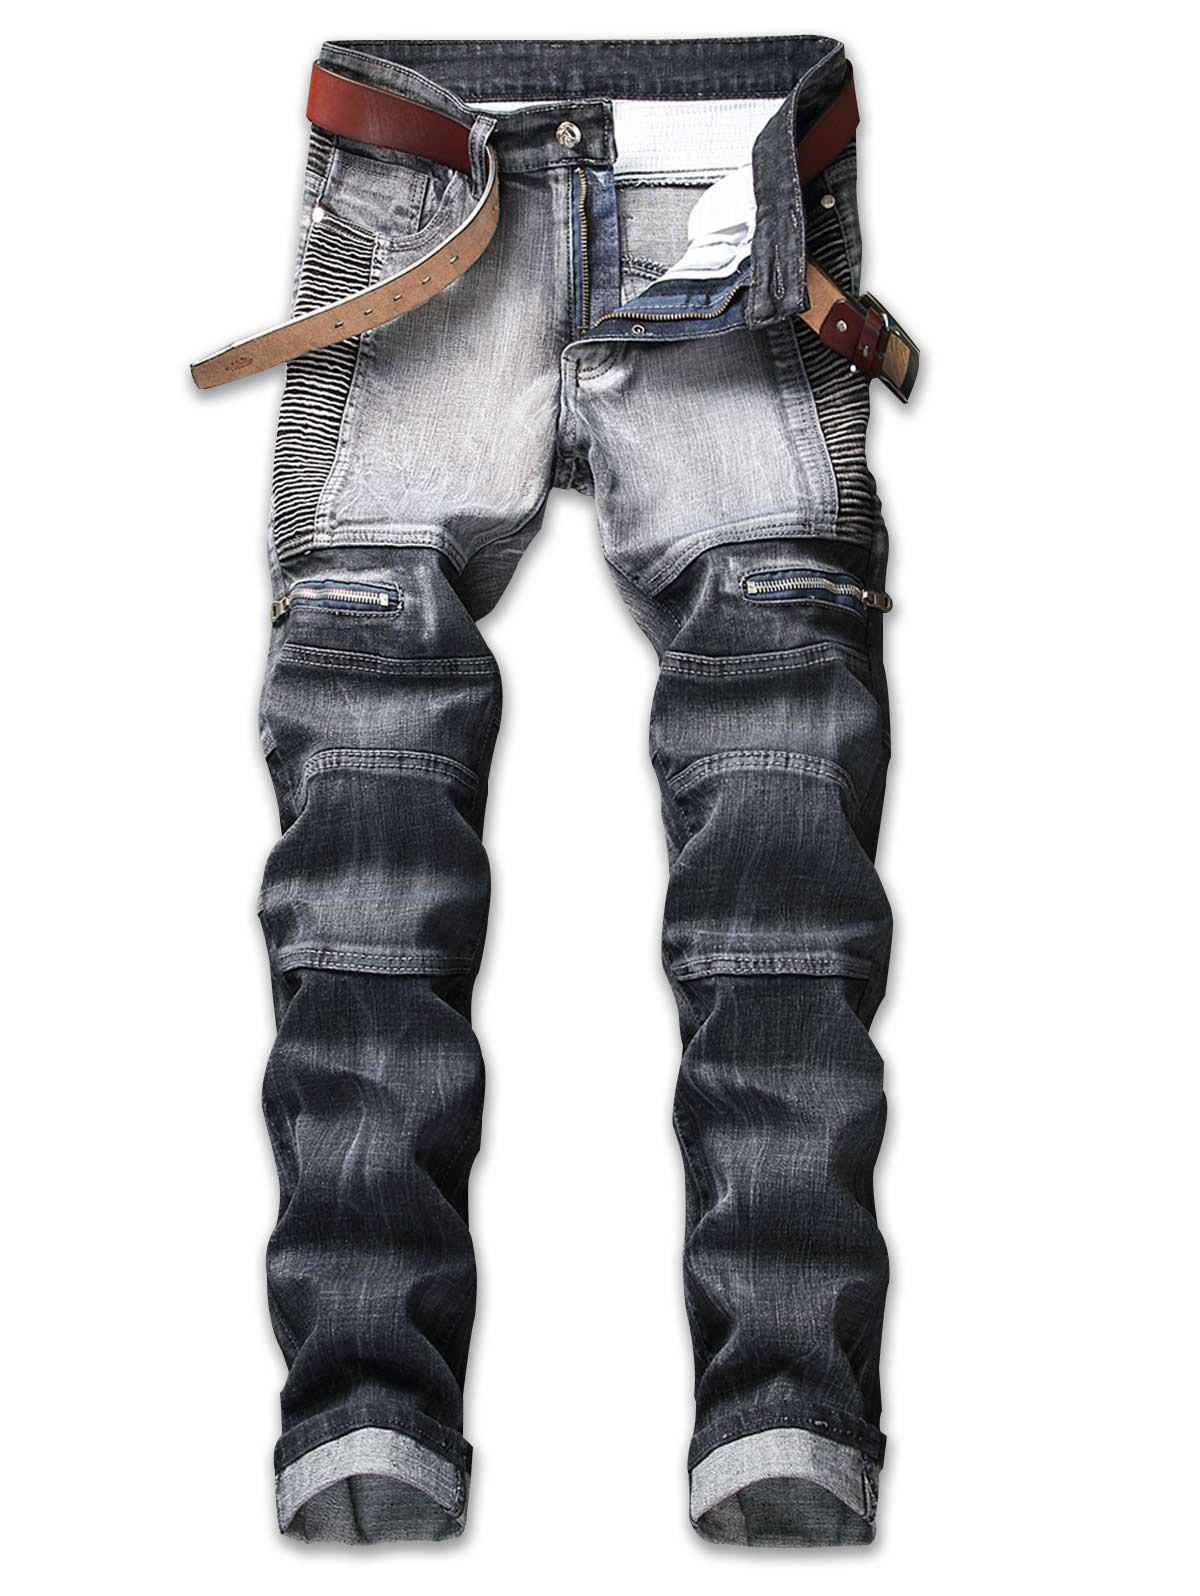 Pleated Zipper Decorated Denim Jeans - GRAY 36